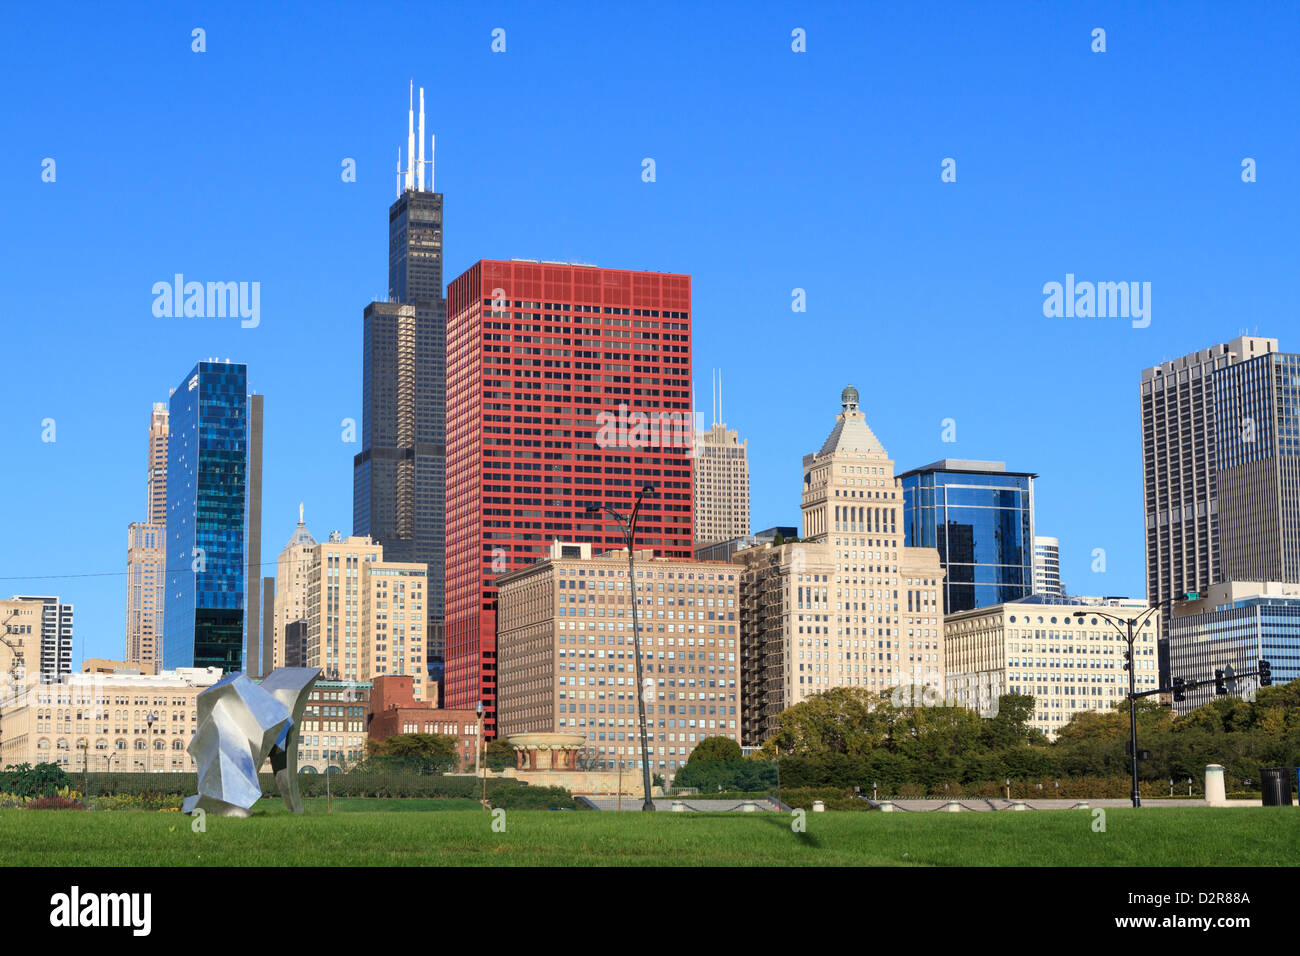 Tall buildings including the Willis Tower, formerly the Sears Tower from Grant Park, Chicago, Illinois, USA - Stock Image